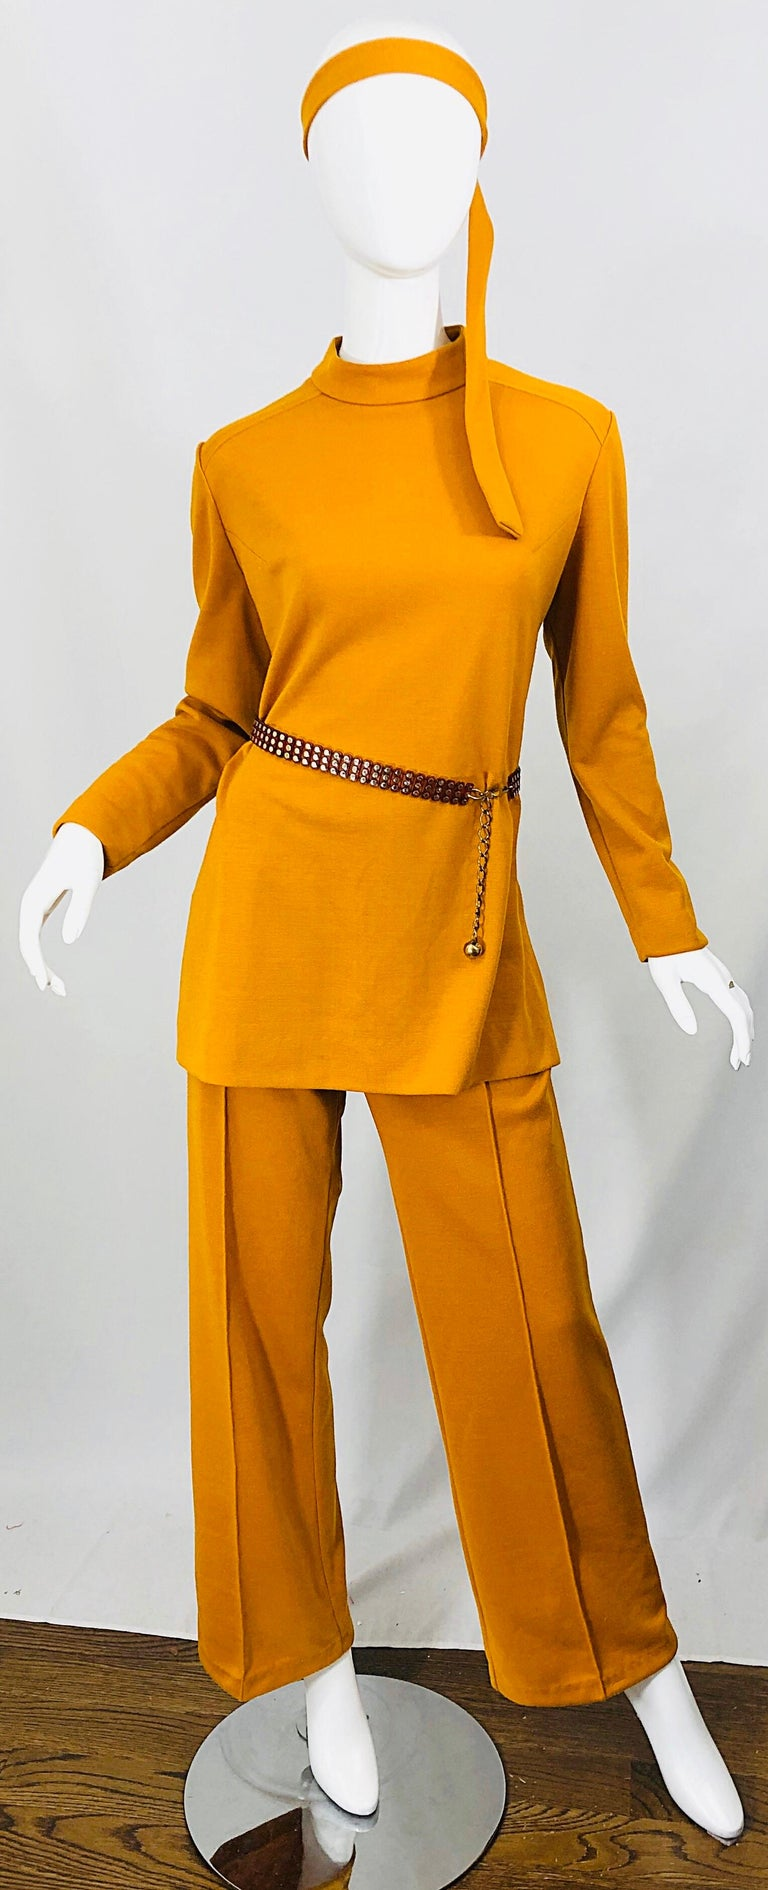 1970s Marigold Mustard Yellow Four Piece Vintage 70s Knit Shirt + Pants + Belt For Sale 7